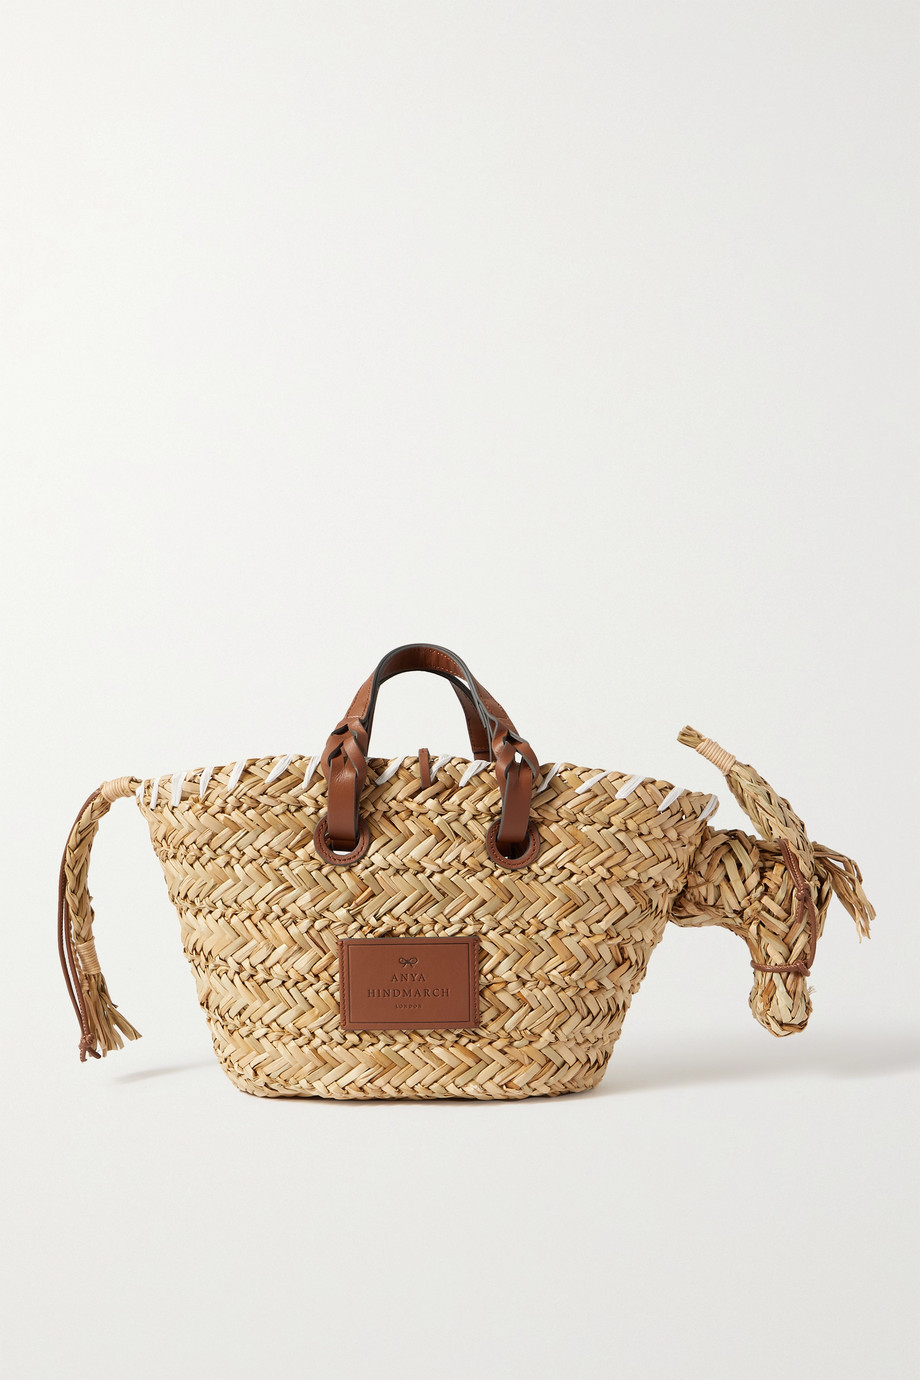 안야 힌드마치 Anya Hindmarch Basket Donkey leather-trimmed woven raffia tote,Beige